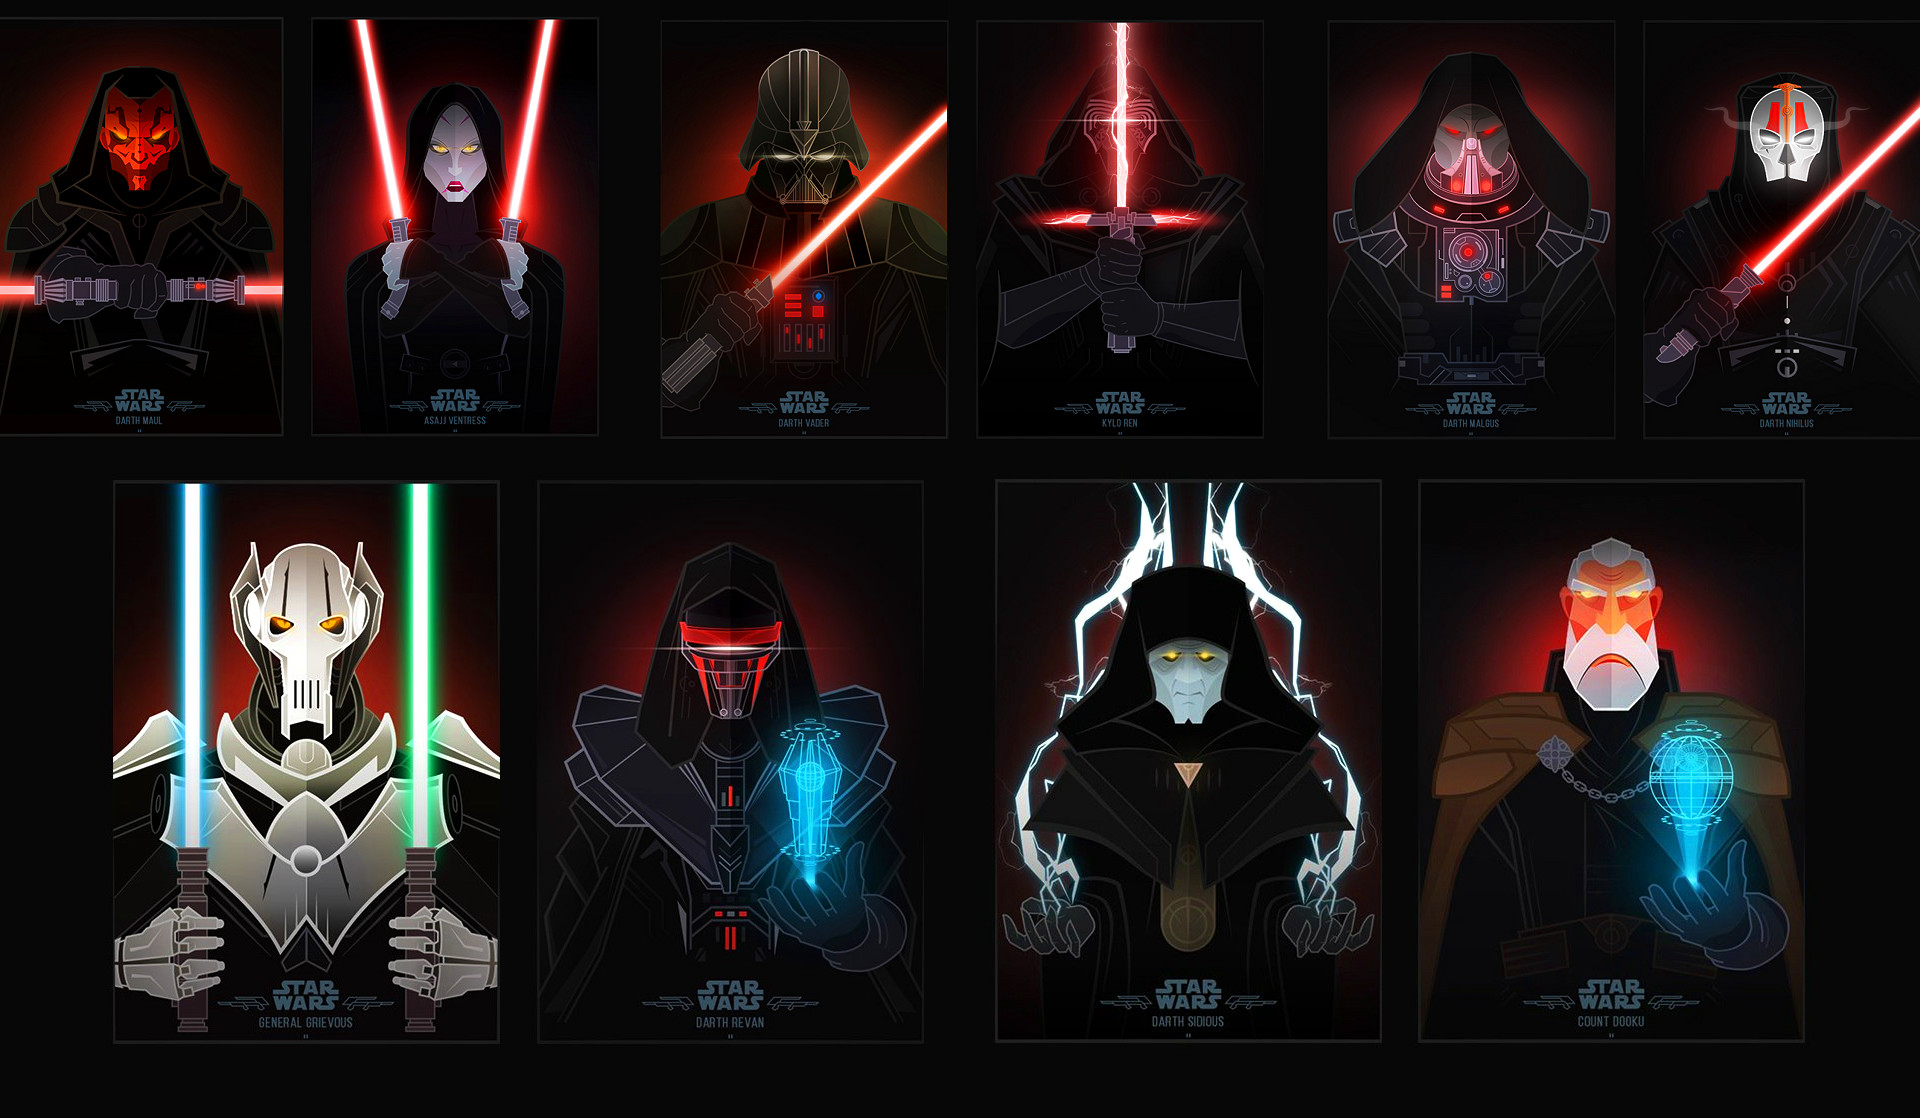 Most Inspiring Wallpaper Harry Potter Star Wars - 108255  Perfect Image Reference_53677.jpg